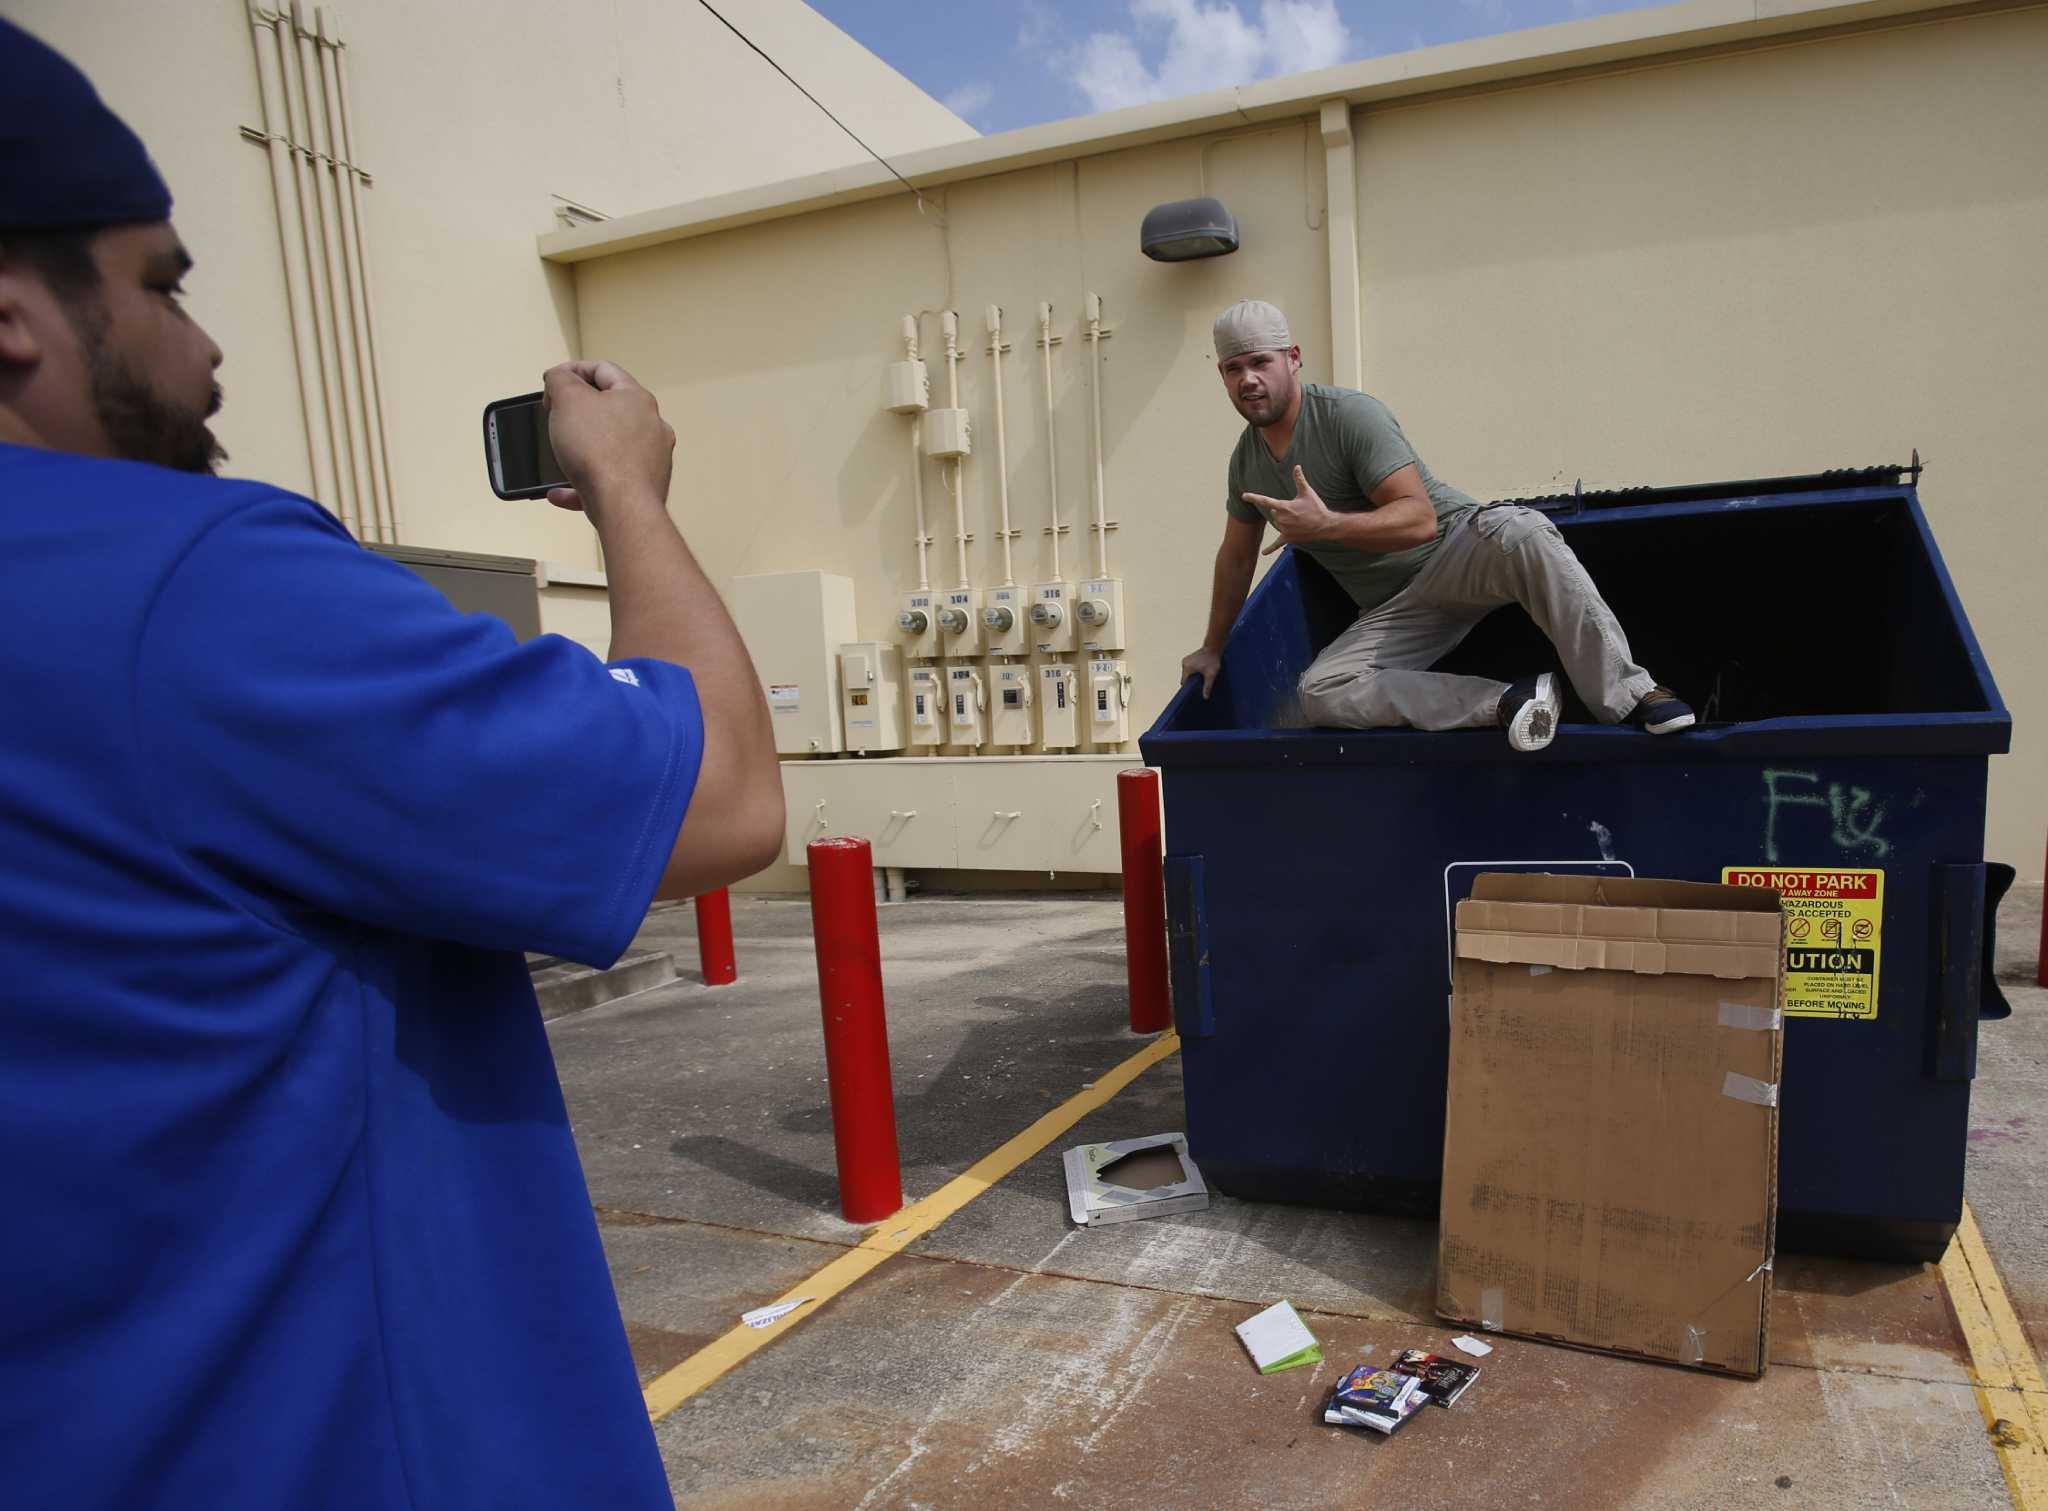 dumpster divers retrieve gaming treasure from the trash san dumpster divers retrieve gaming treasure from the trash san antonio express news